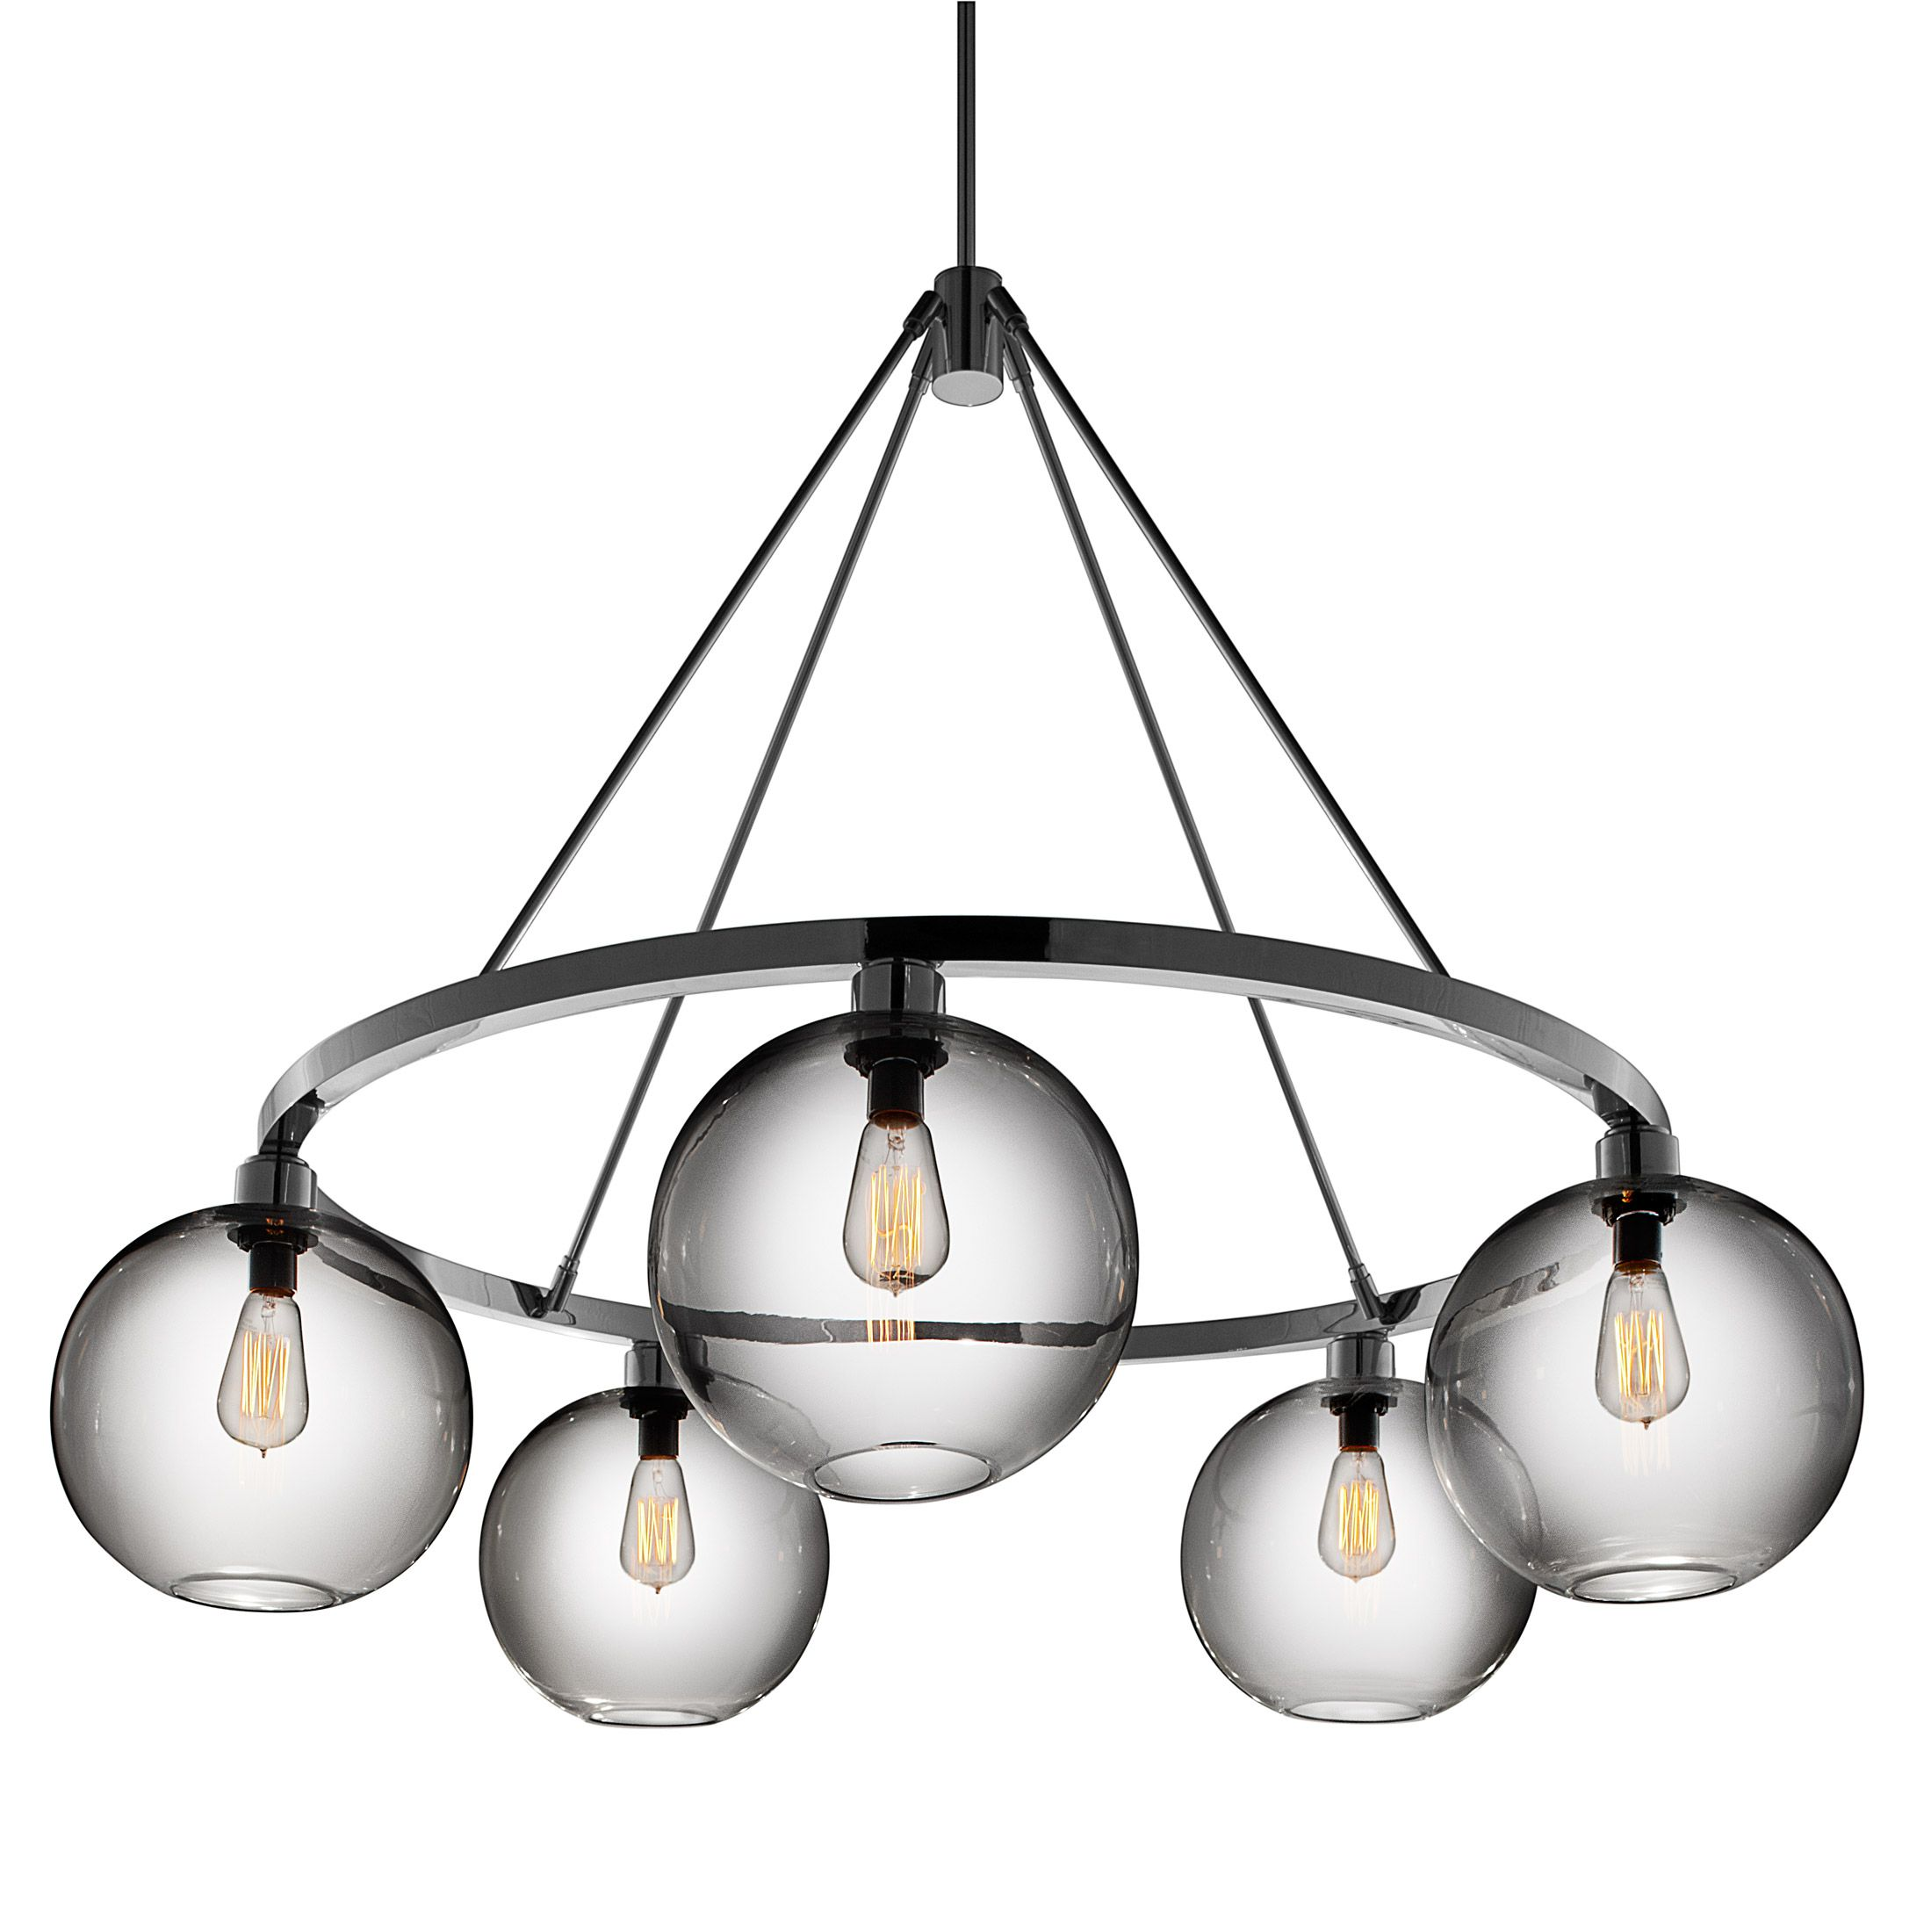 niche modern lighting. Niche Modern Lighting. Sola 36 Chandelier (Solitaire Pendant In Crystal) From Lighting E